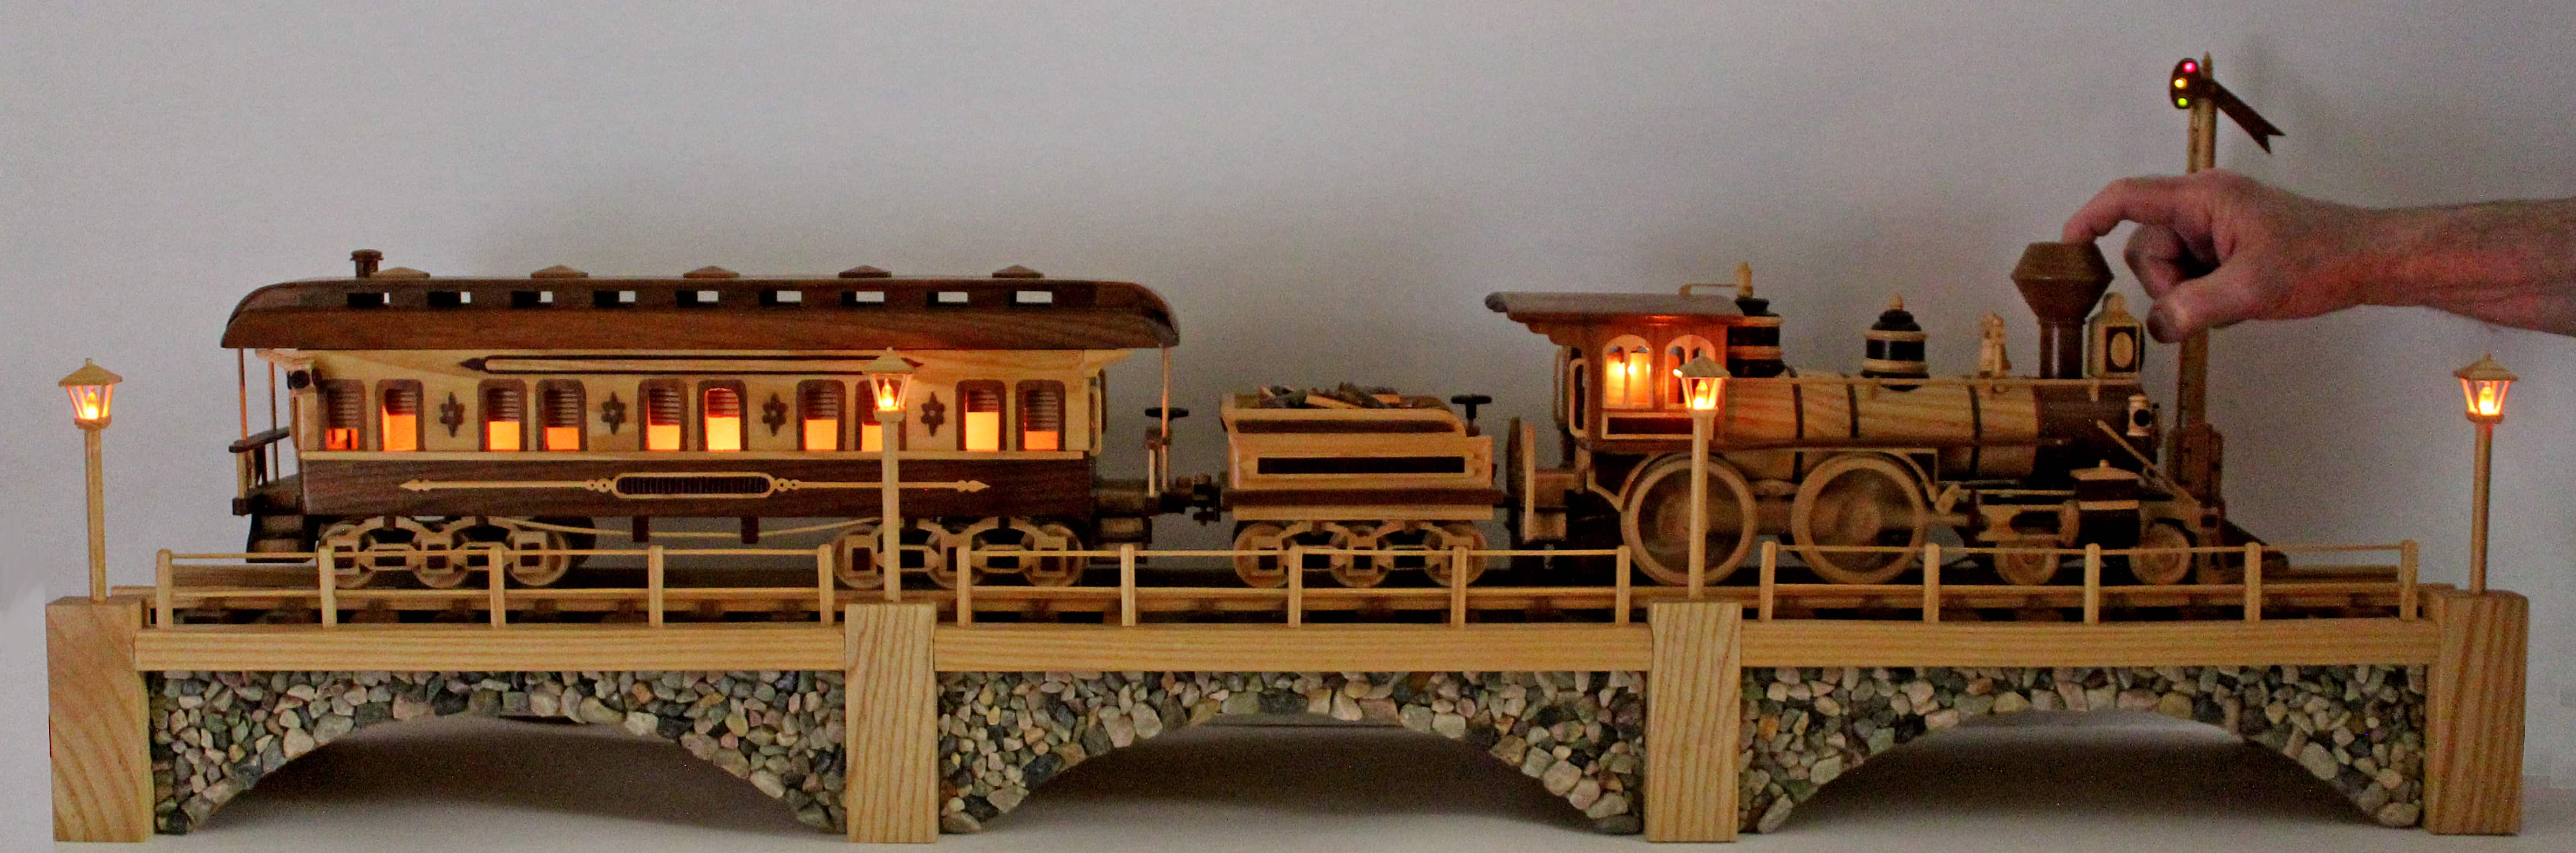 Iron Horse Train With Three Cars A Woodworking Plan From